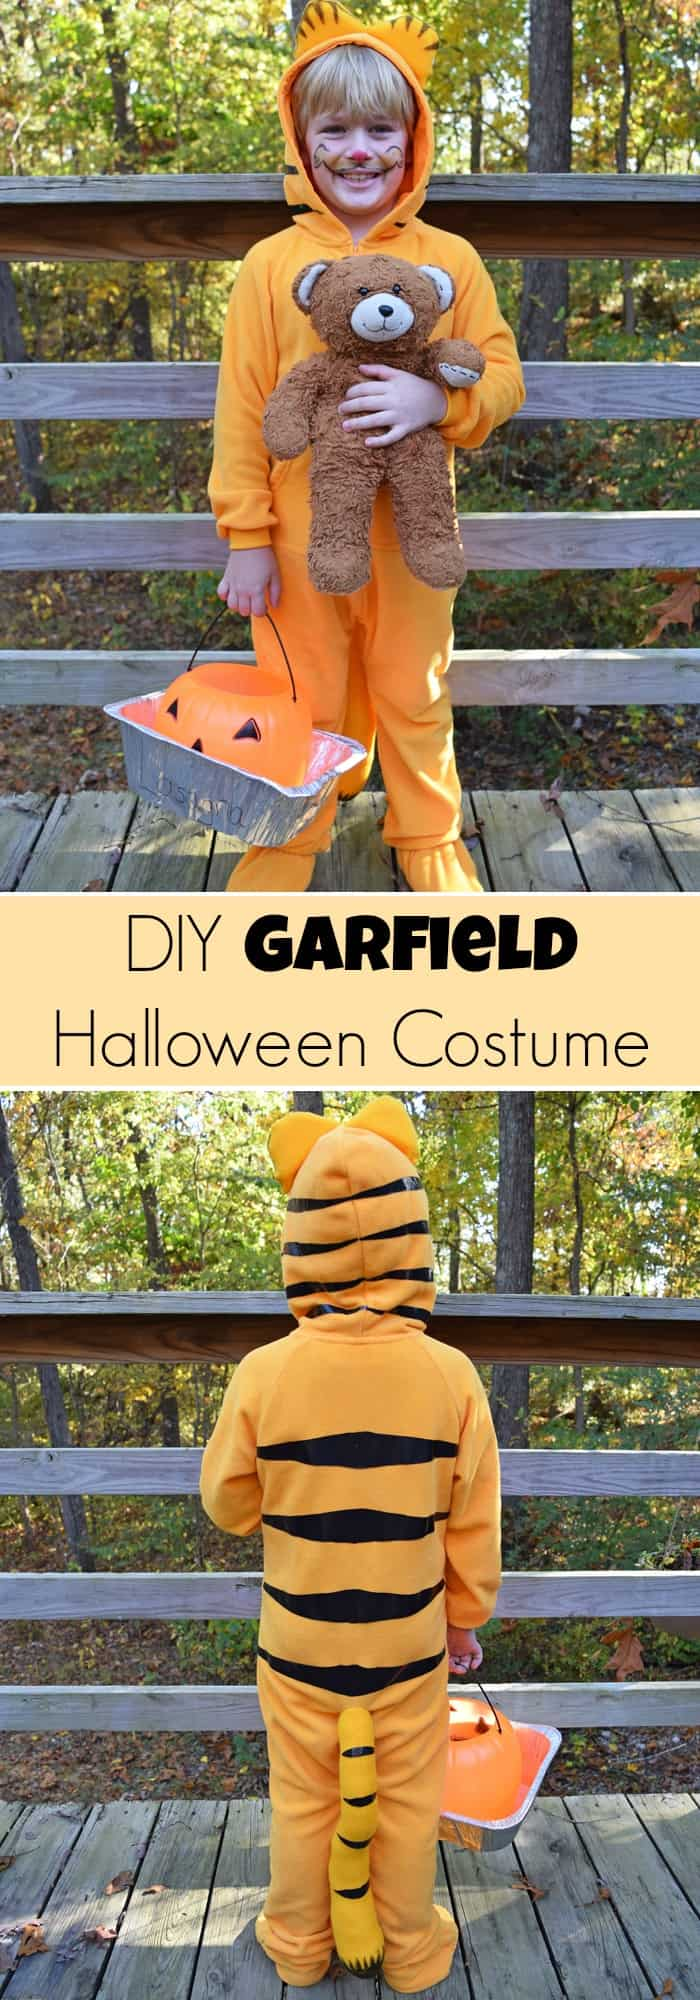 Easy DIY Garfield Halloween Costume {MamaBuzz - mamabzz.com}